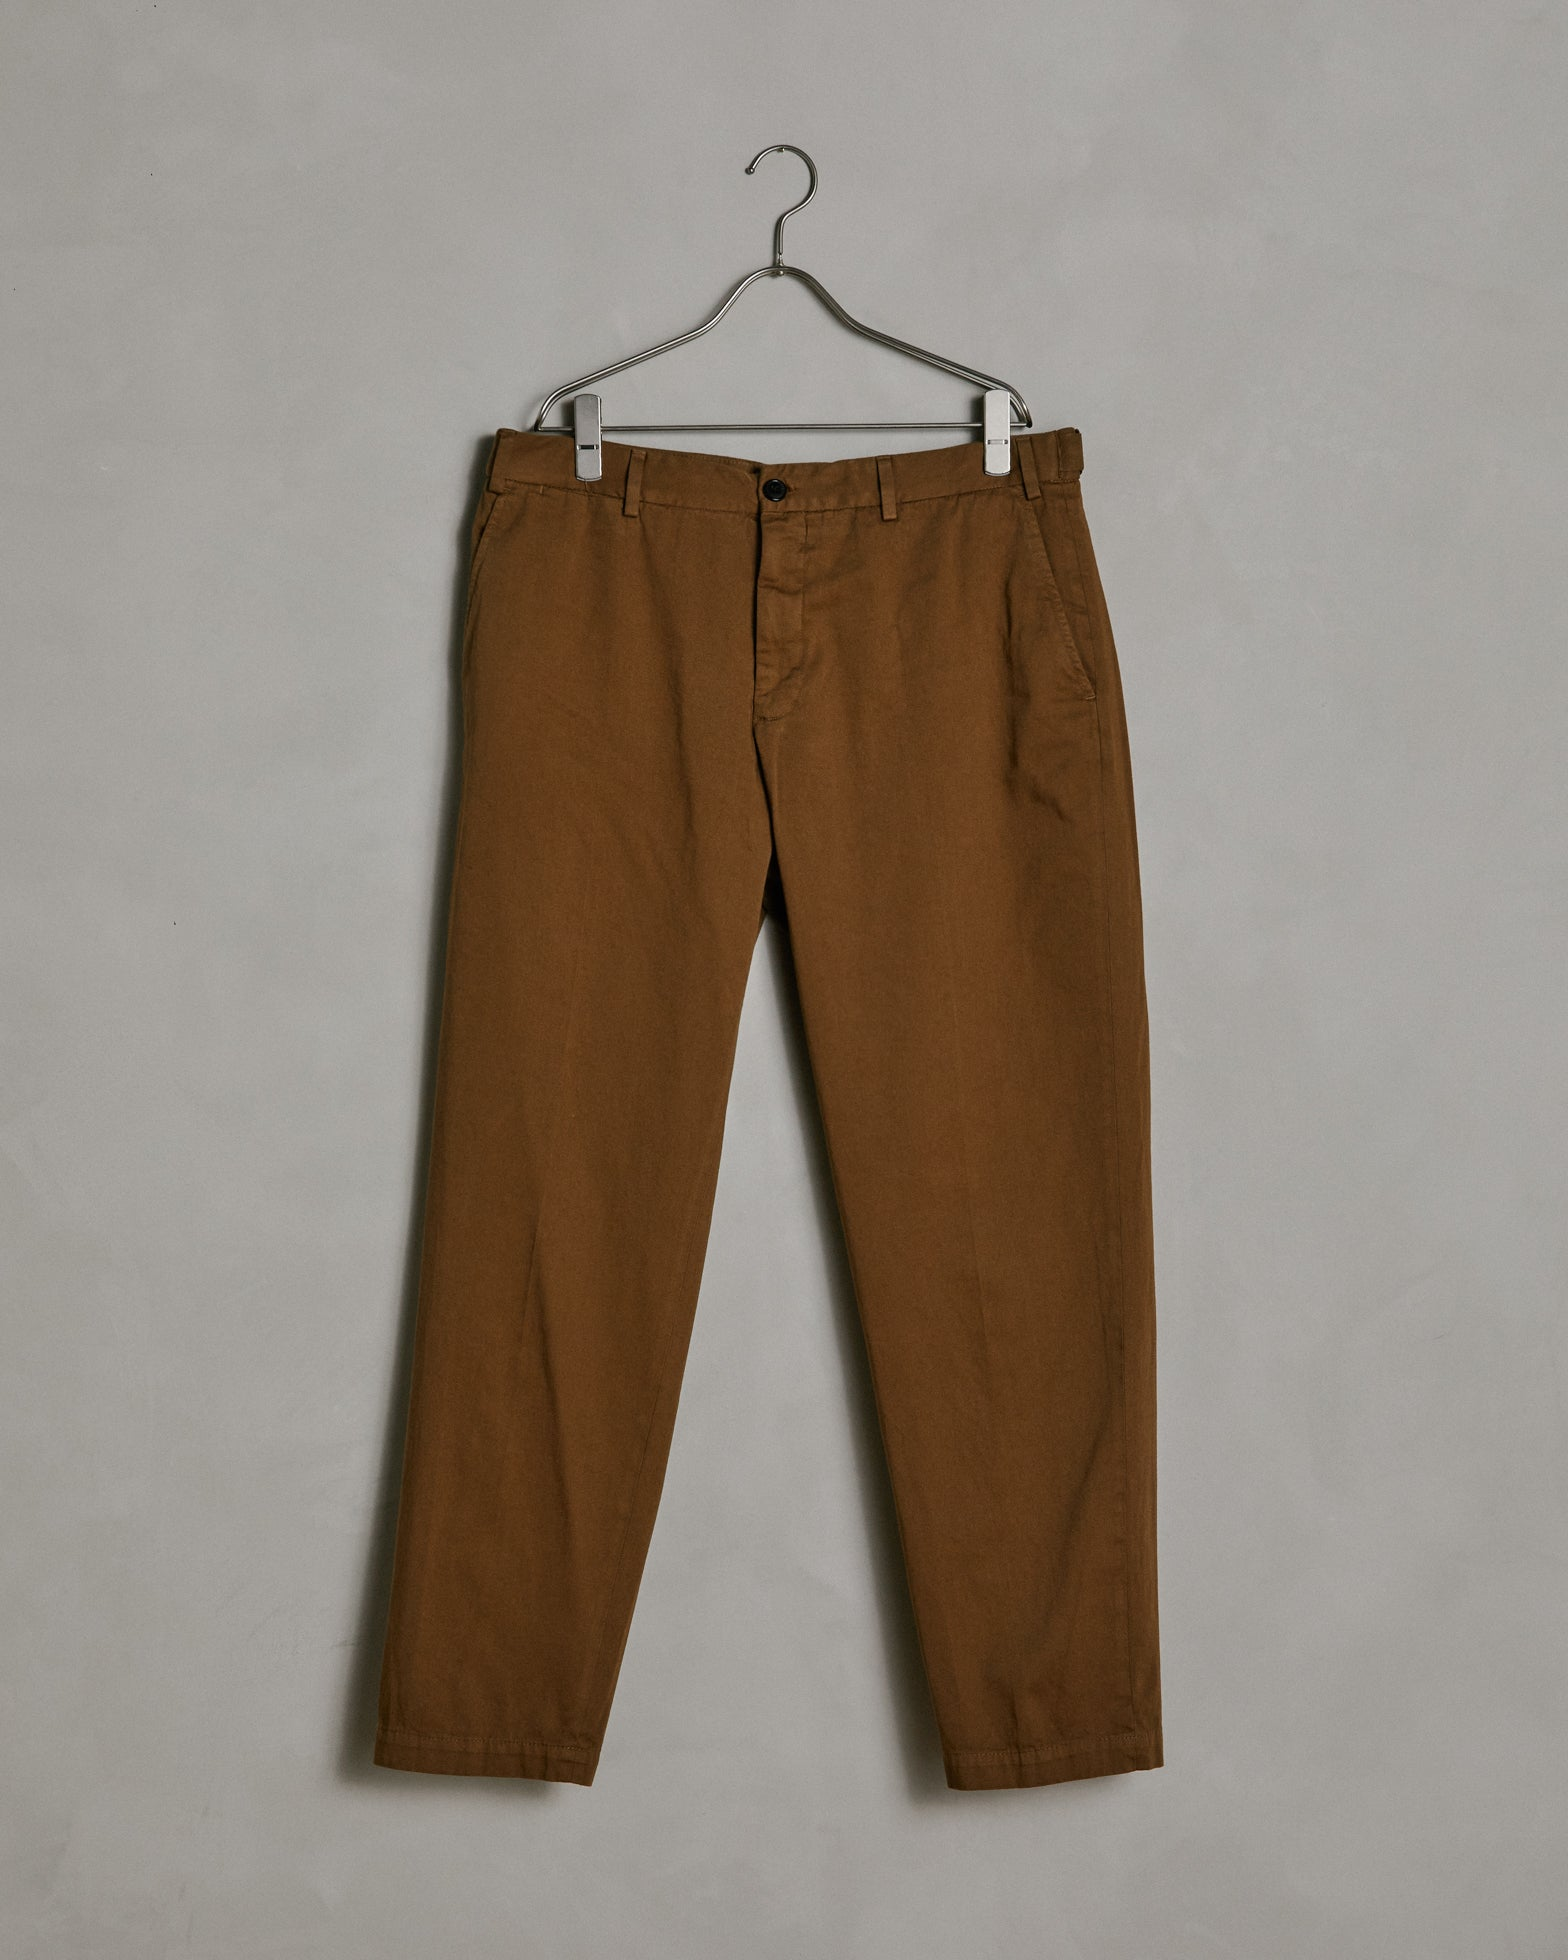 Philip Bis 1282 Pants in Stone